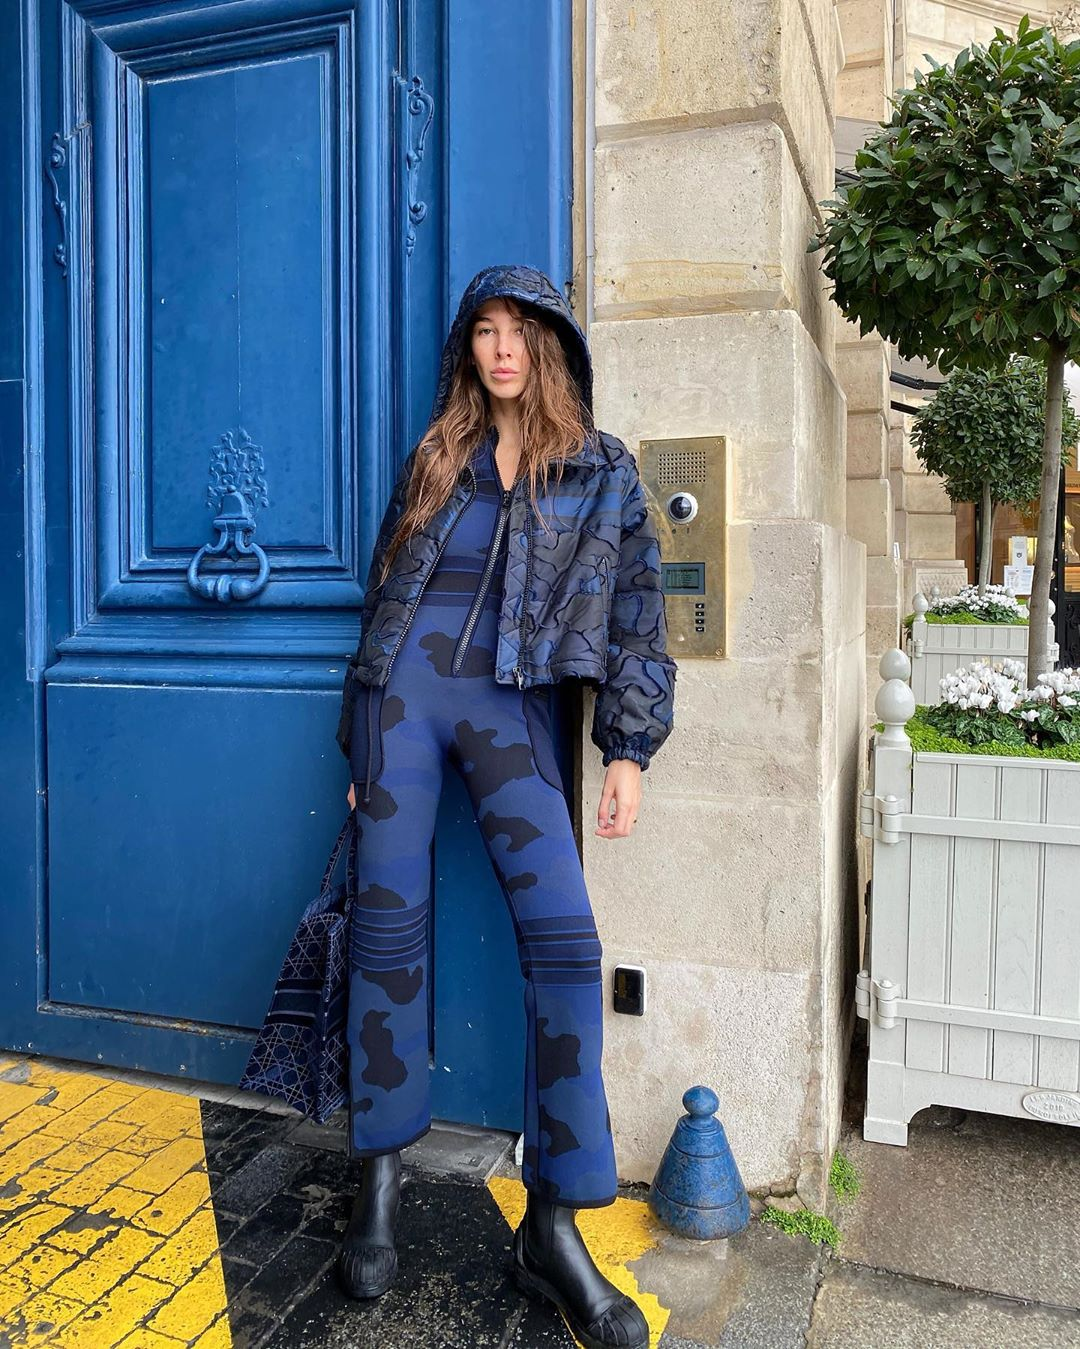 estelle-chemouny-dior-camouflage-outfit-instagram